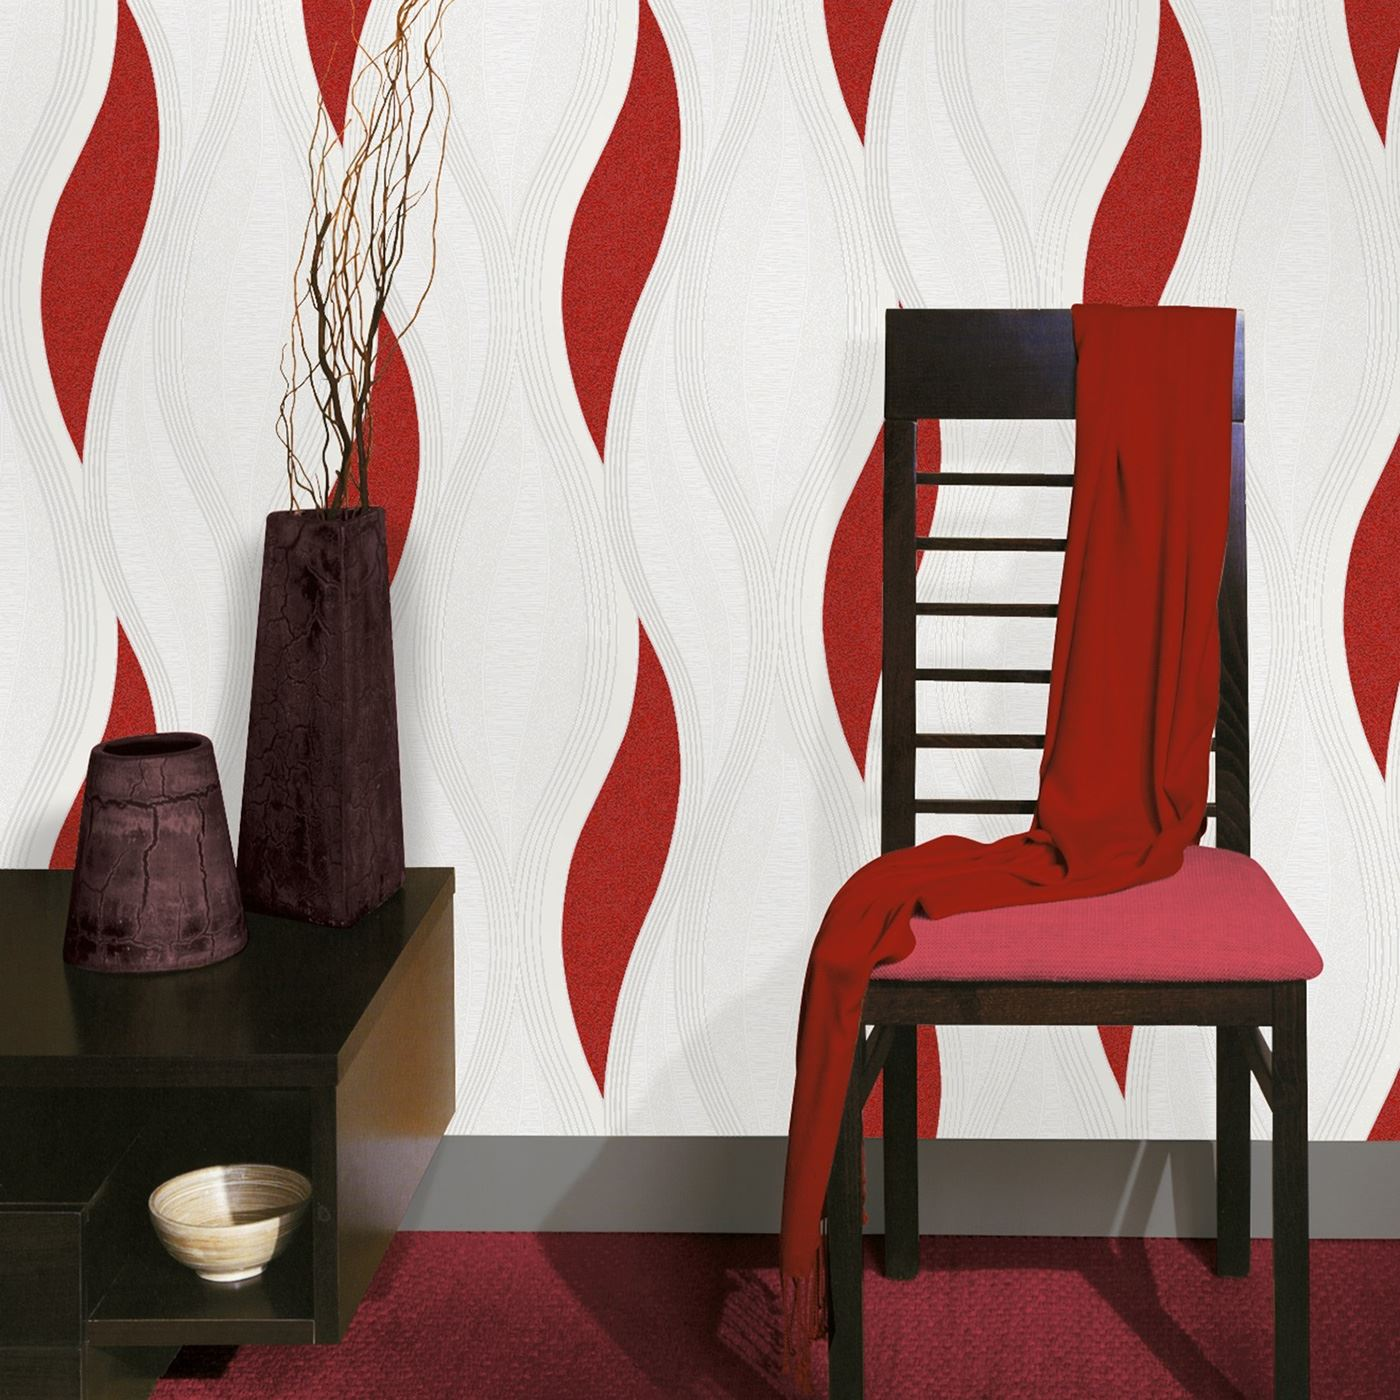 WAVE EMBOSSED TEXTURED WALLPAPER ROLLS RED E62010 UGEPA NEW